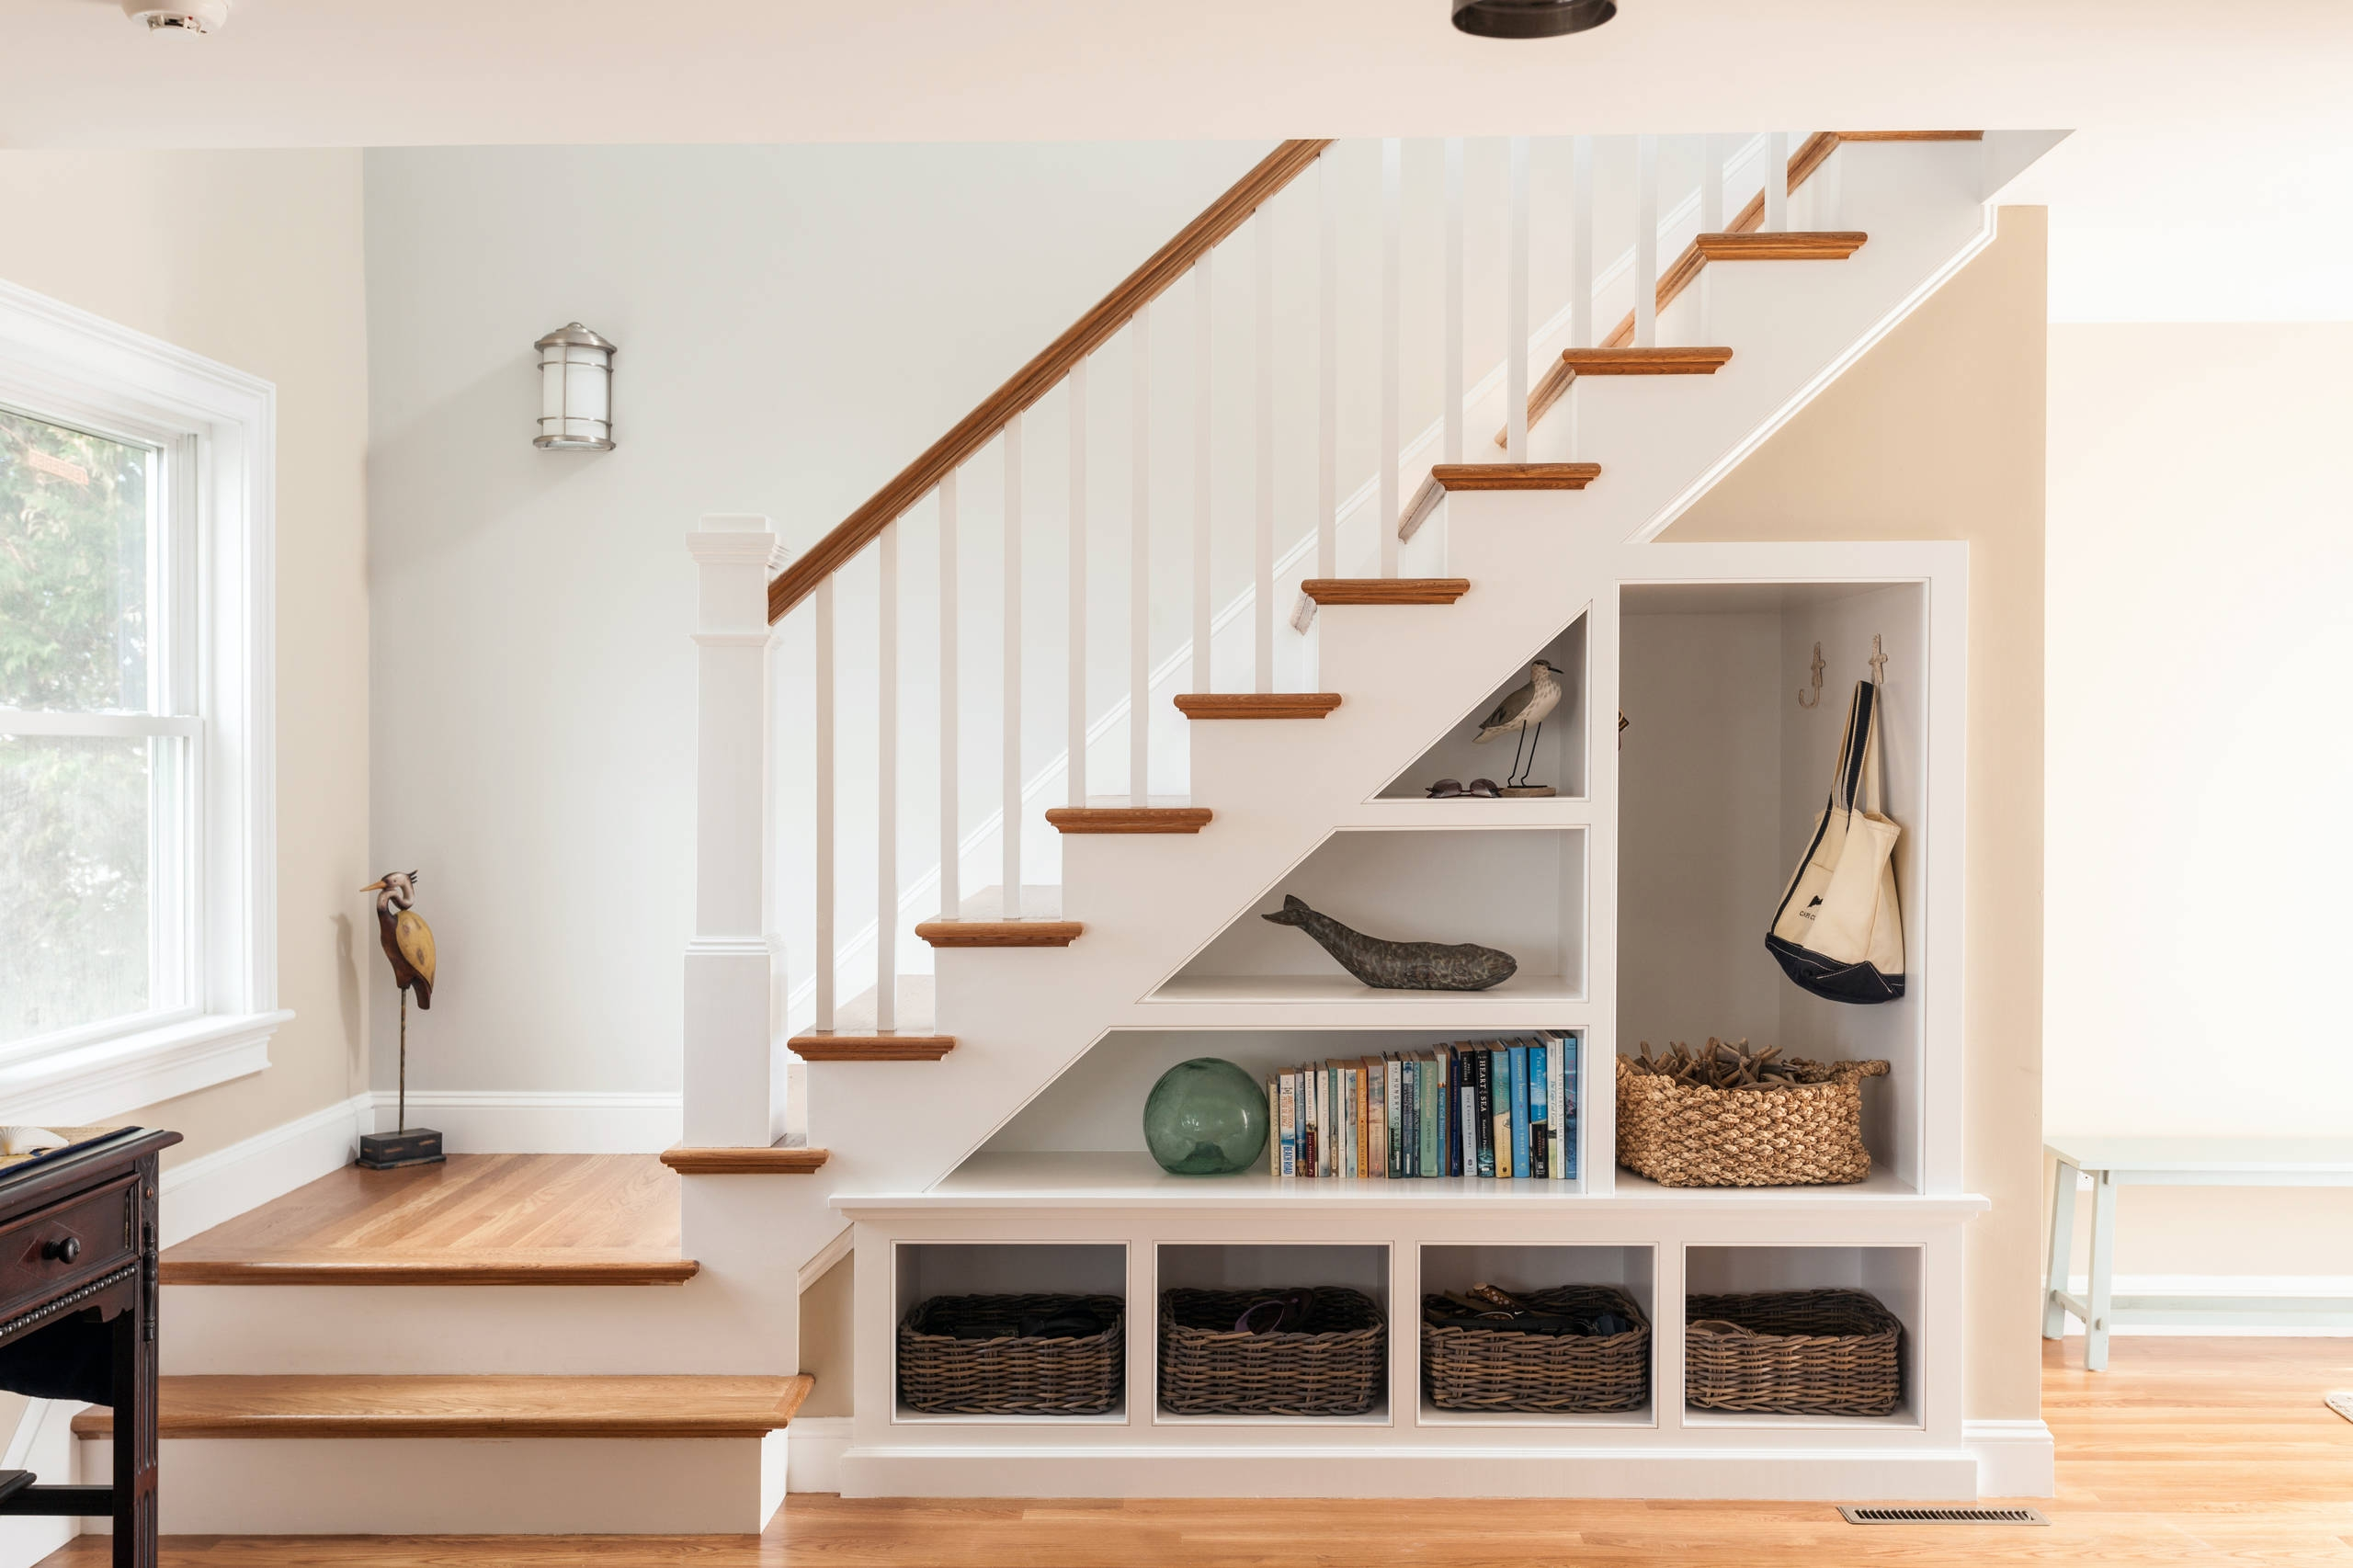 75 Beautiful Staircase Pictures Ideas September 2020 Houzz | Stairs Wall Paint Design | Designer | Fancy | Beautiful | Staircase Railing Wood | Wall Colour